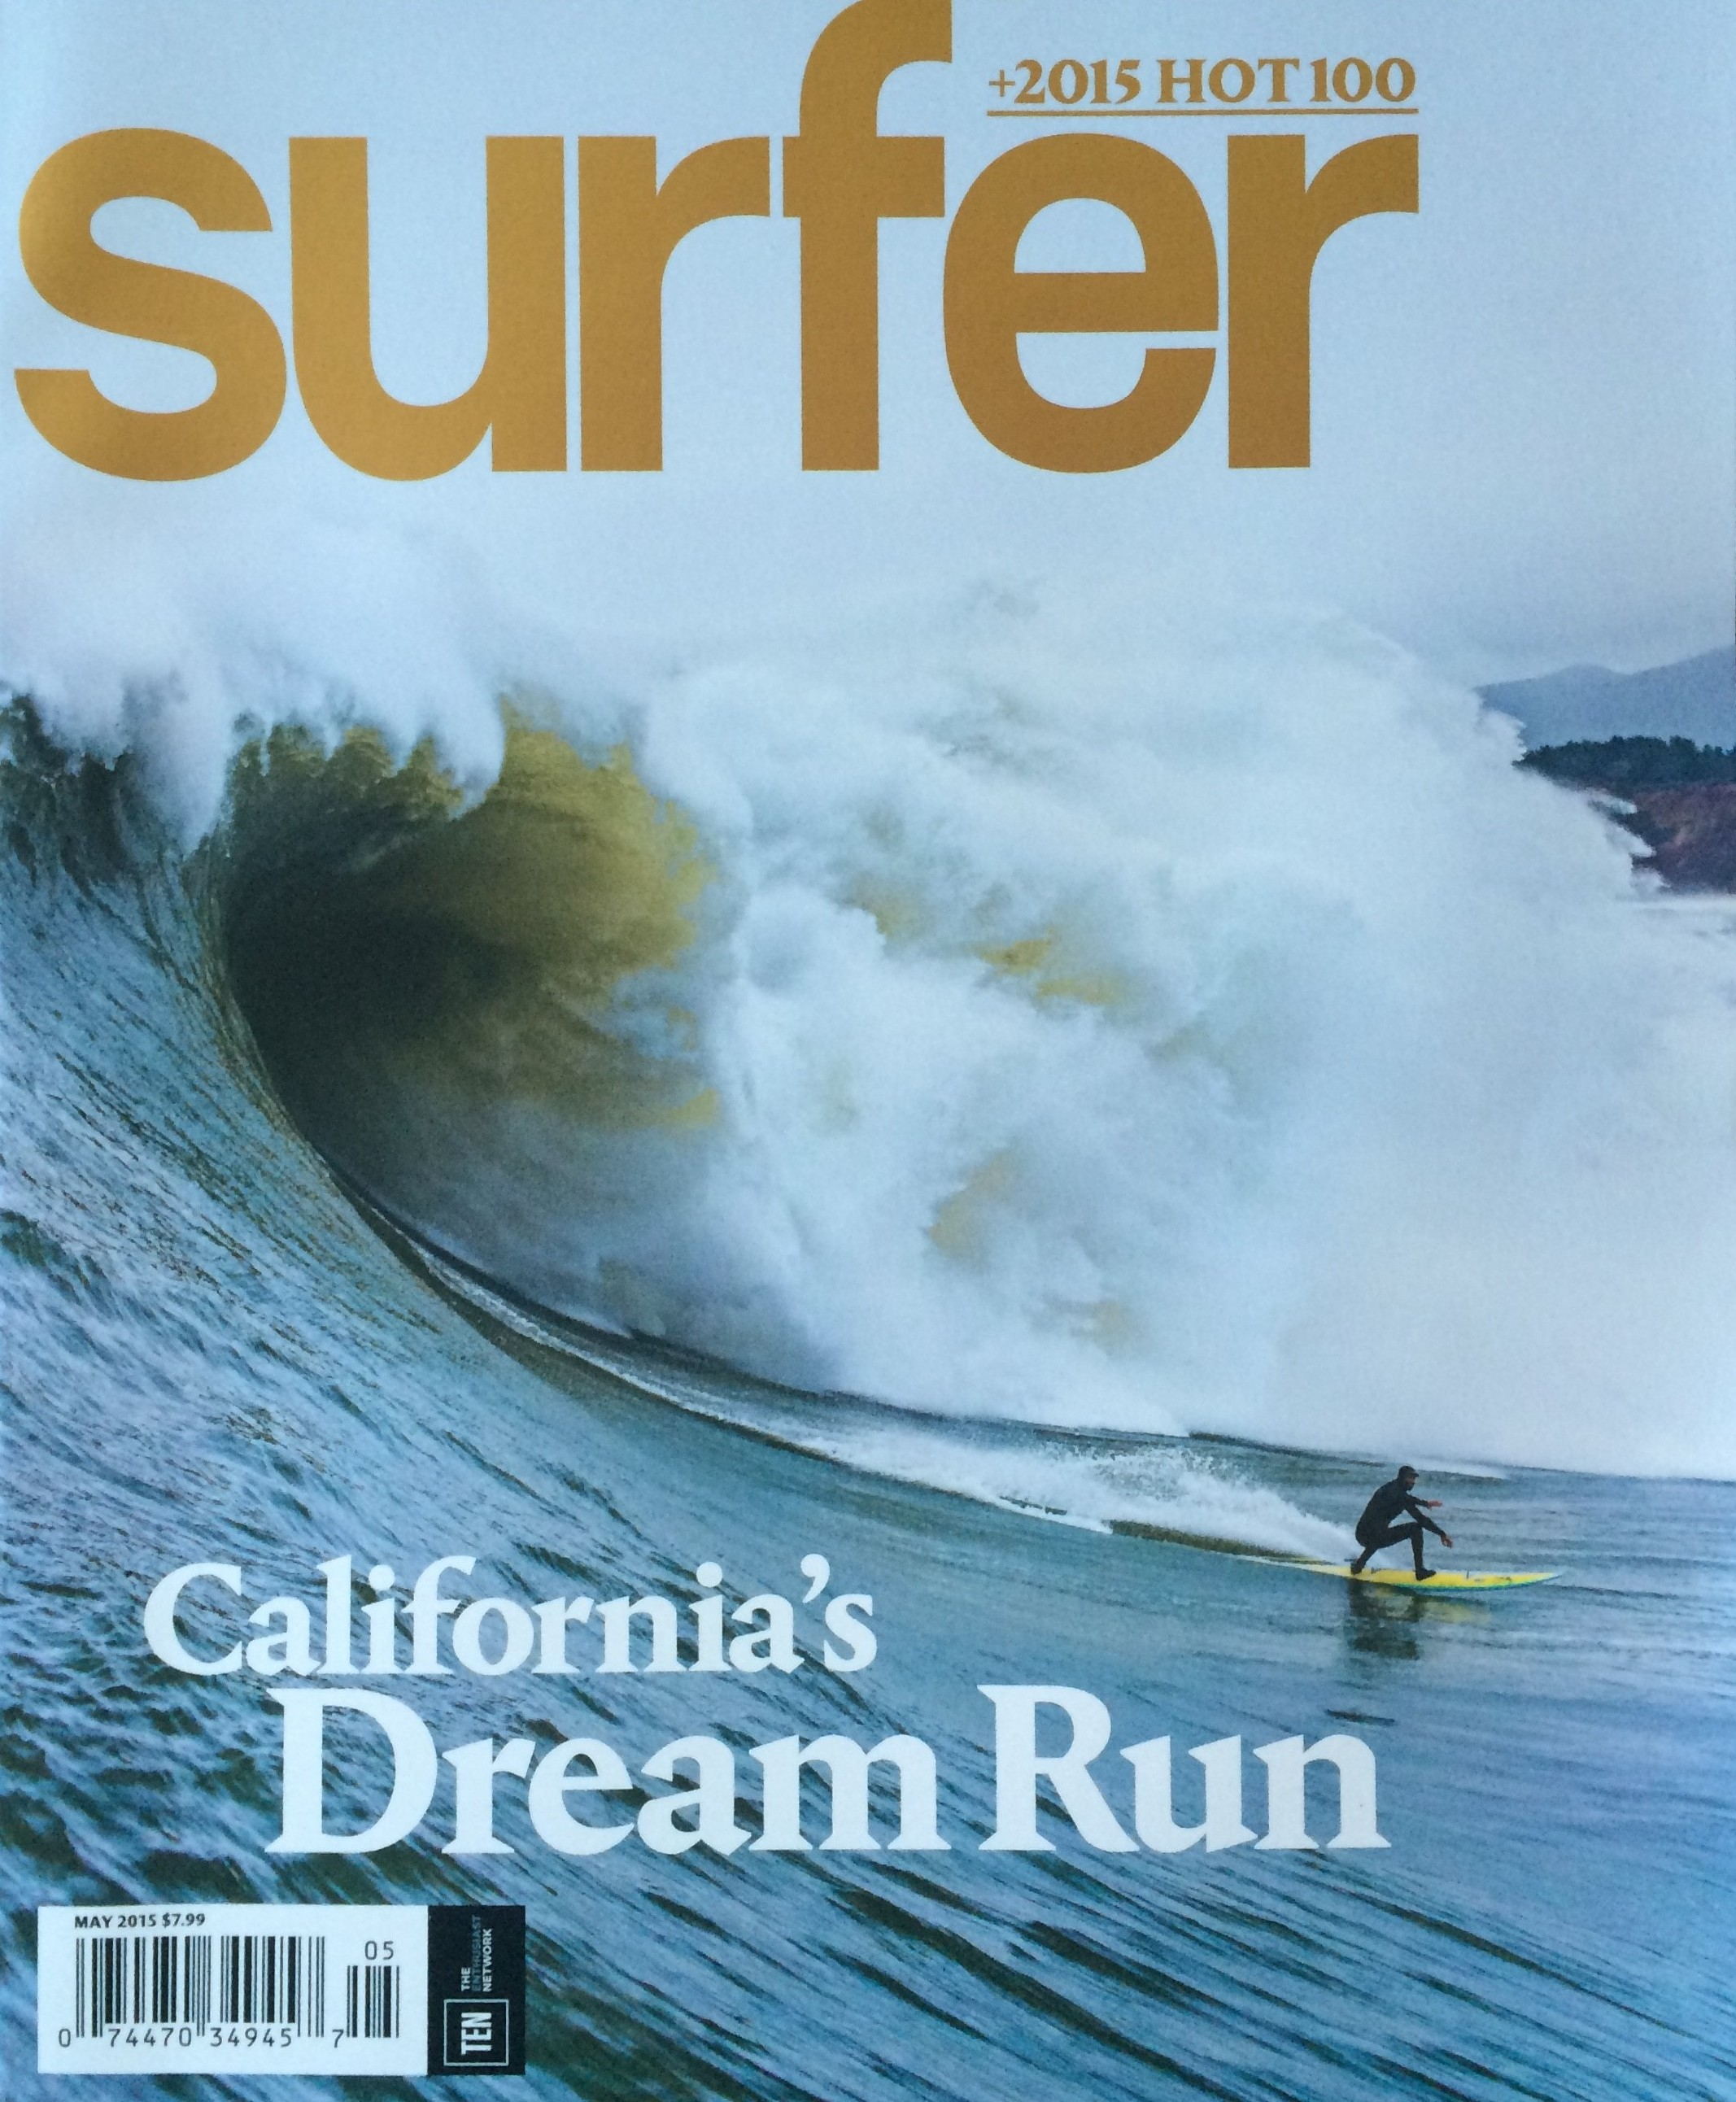 Hey, that's (not) me on the cover of SURFER! No worries, though, I'm on the inside.